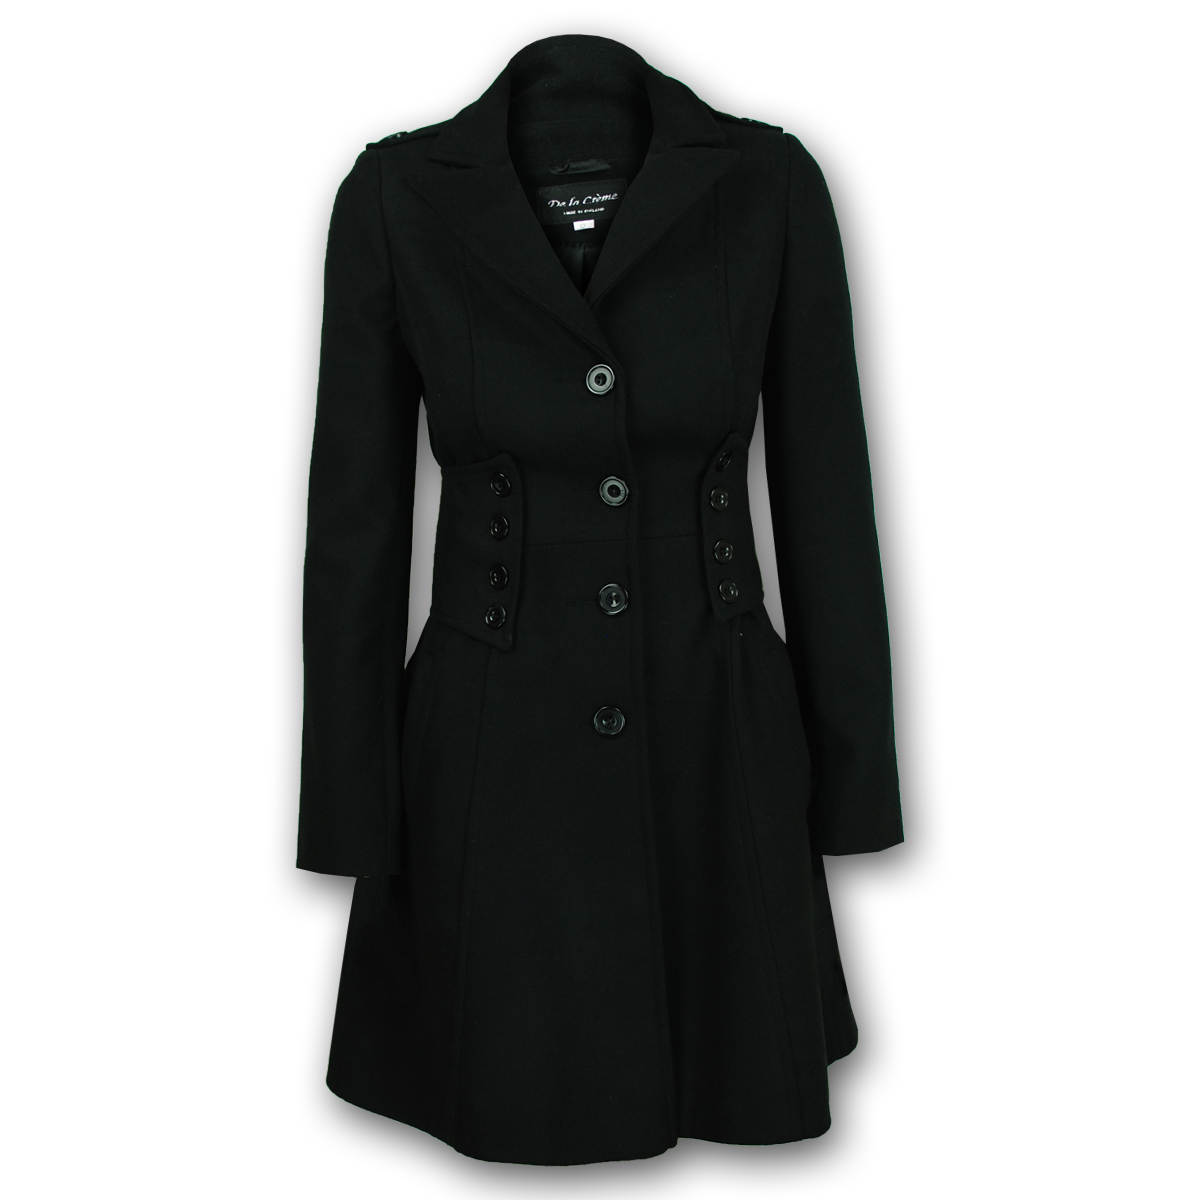 Warm winter coat women